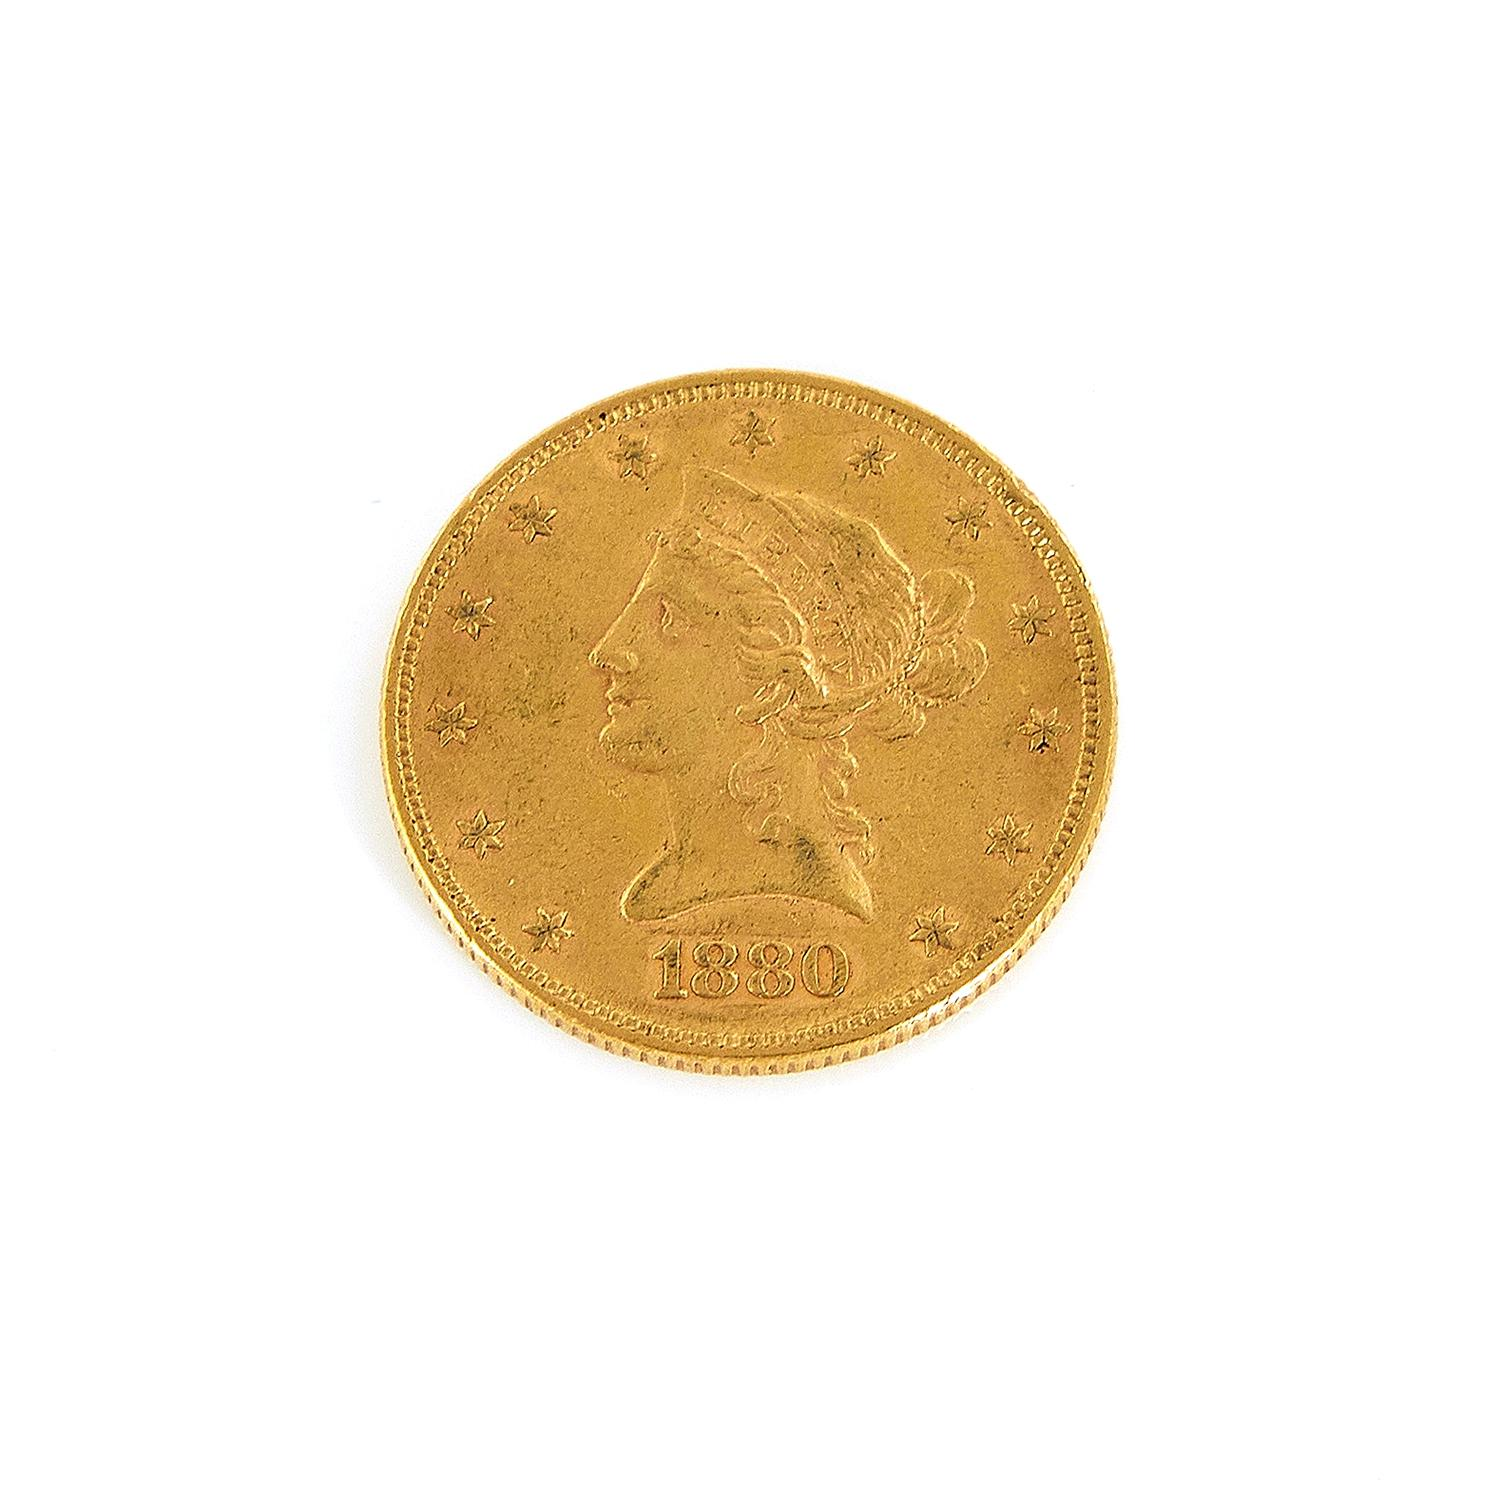 †United States 1880 Liberty head $10 gold coin